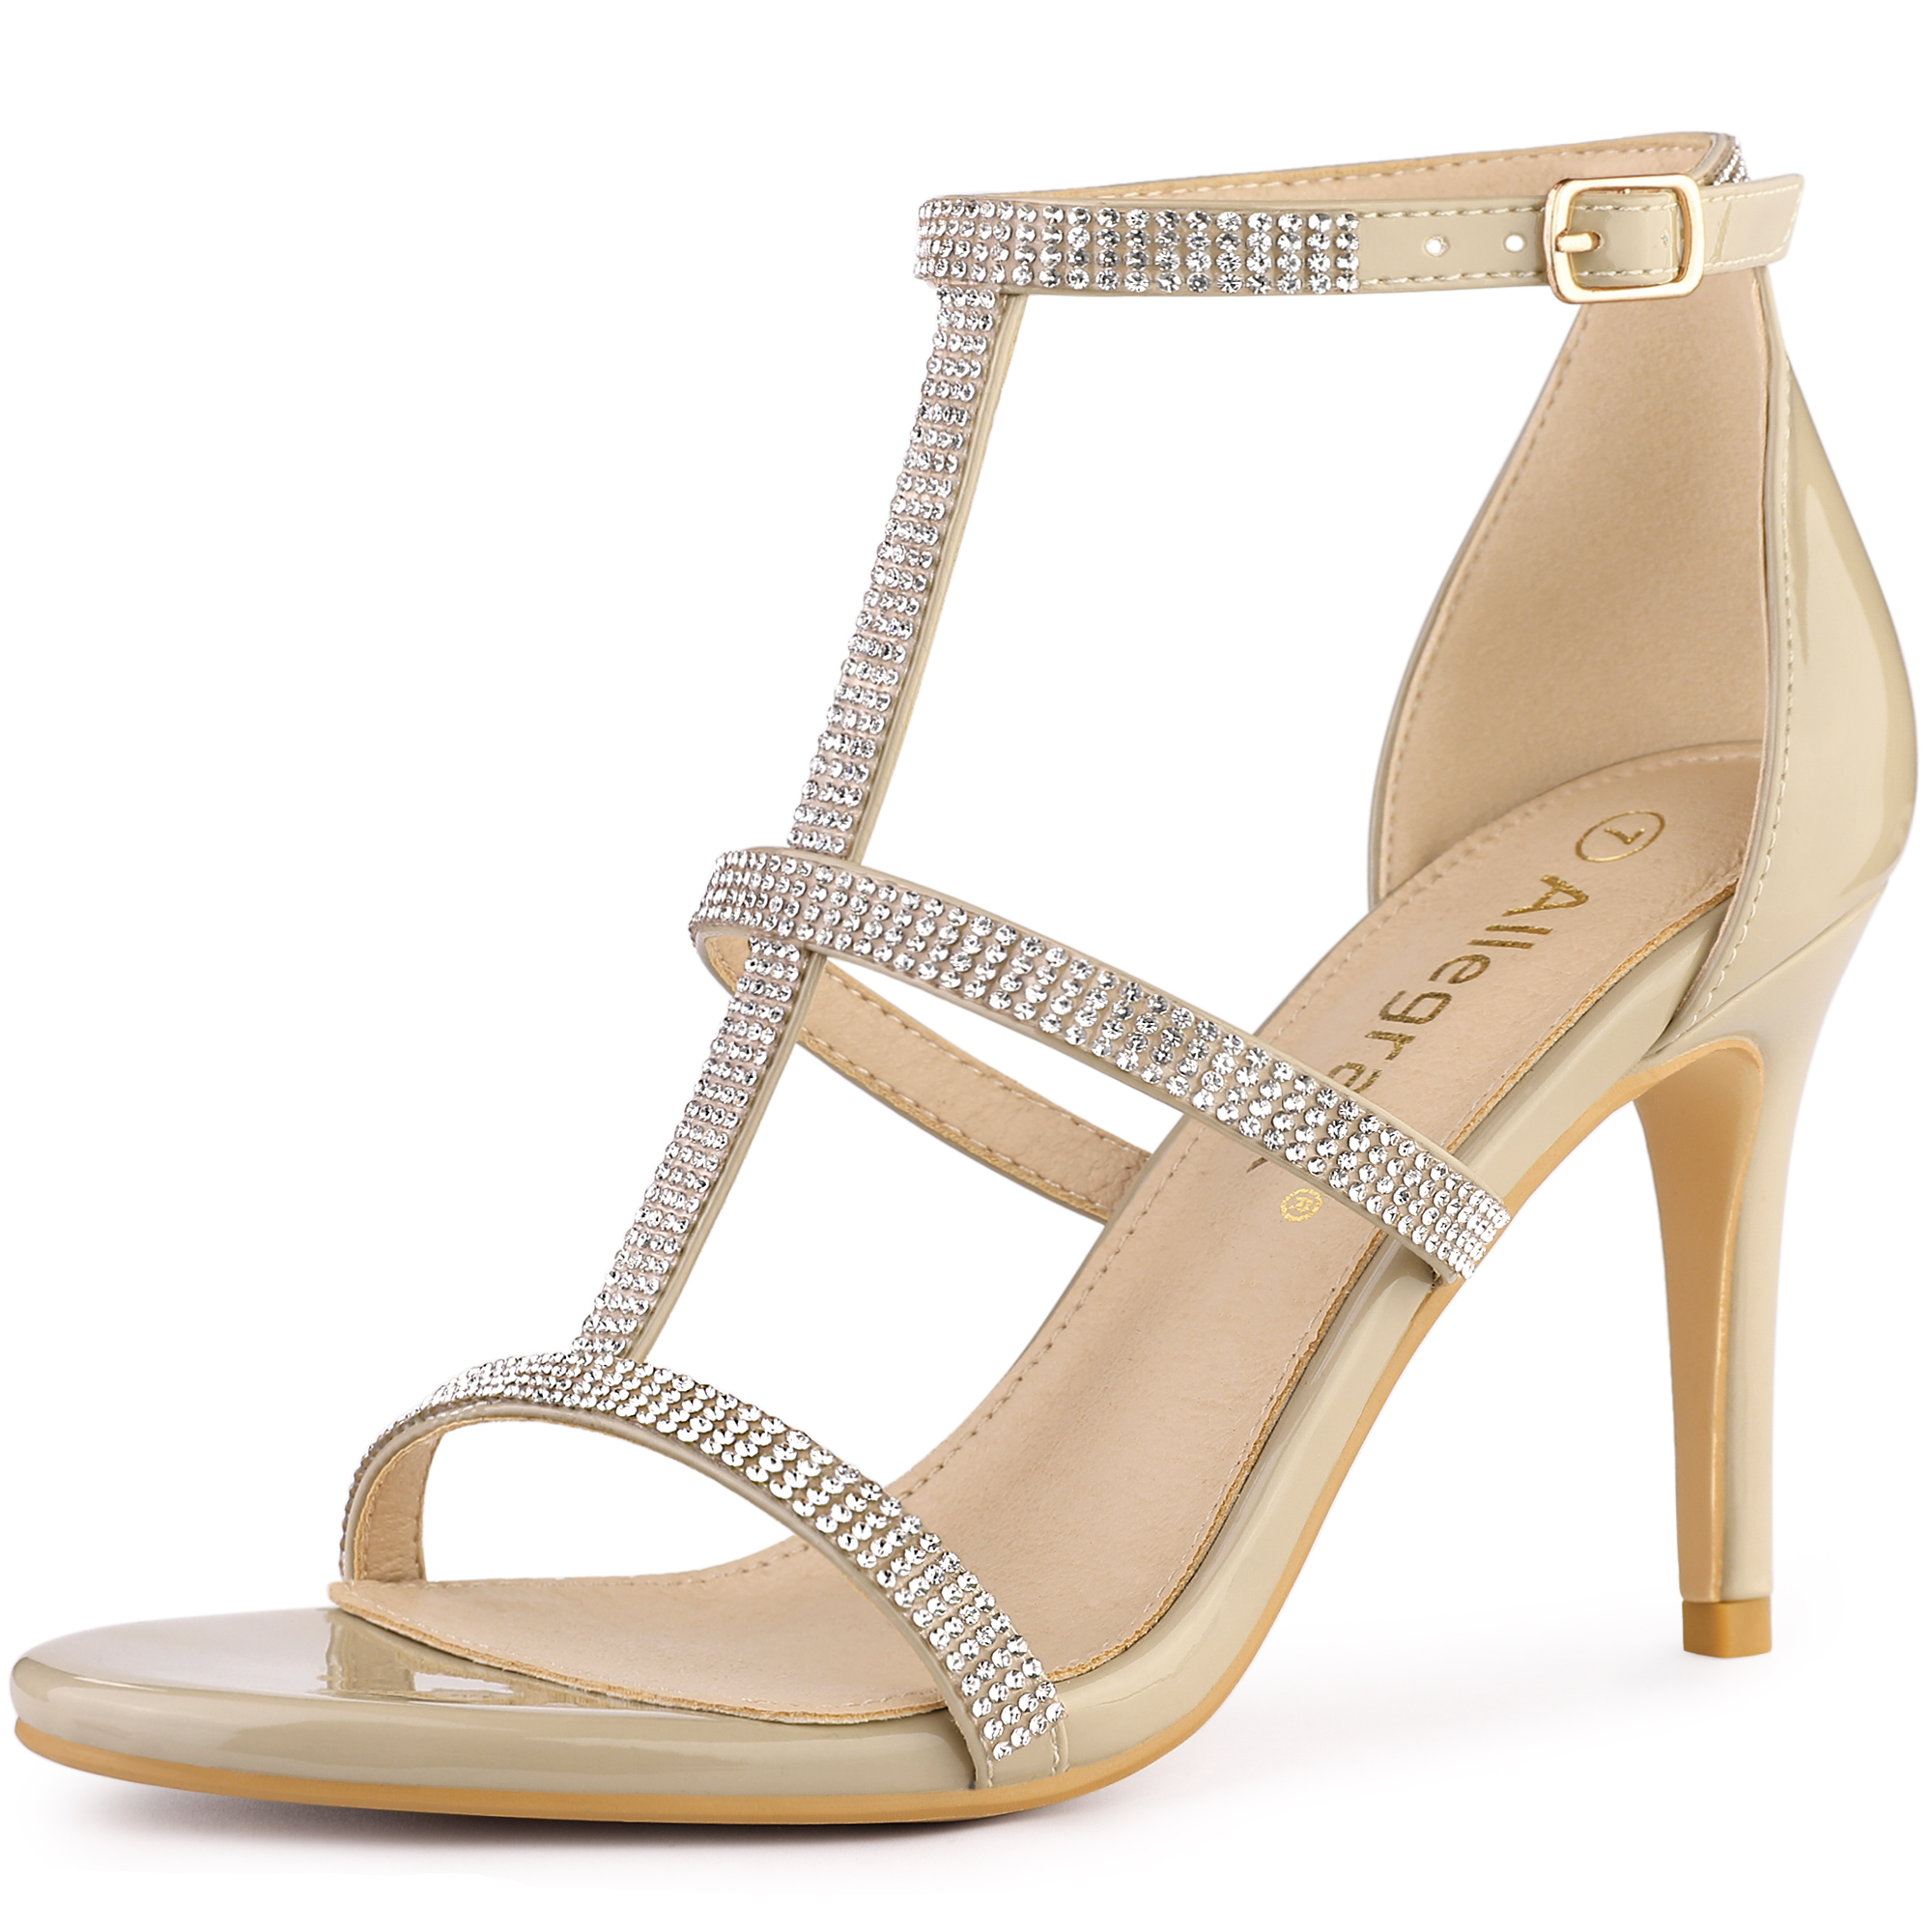 Allegra K Women's Rhinestone Ankle Strap Stiletto High Heel Sandals Beige US 6